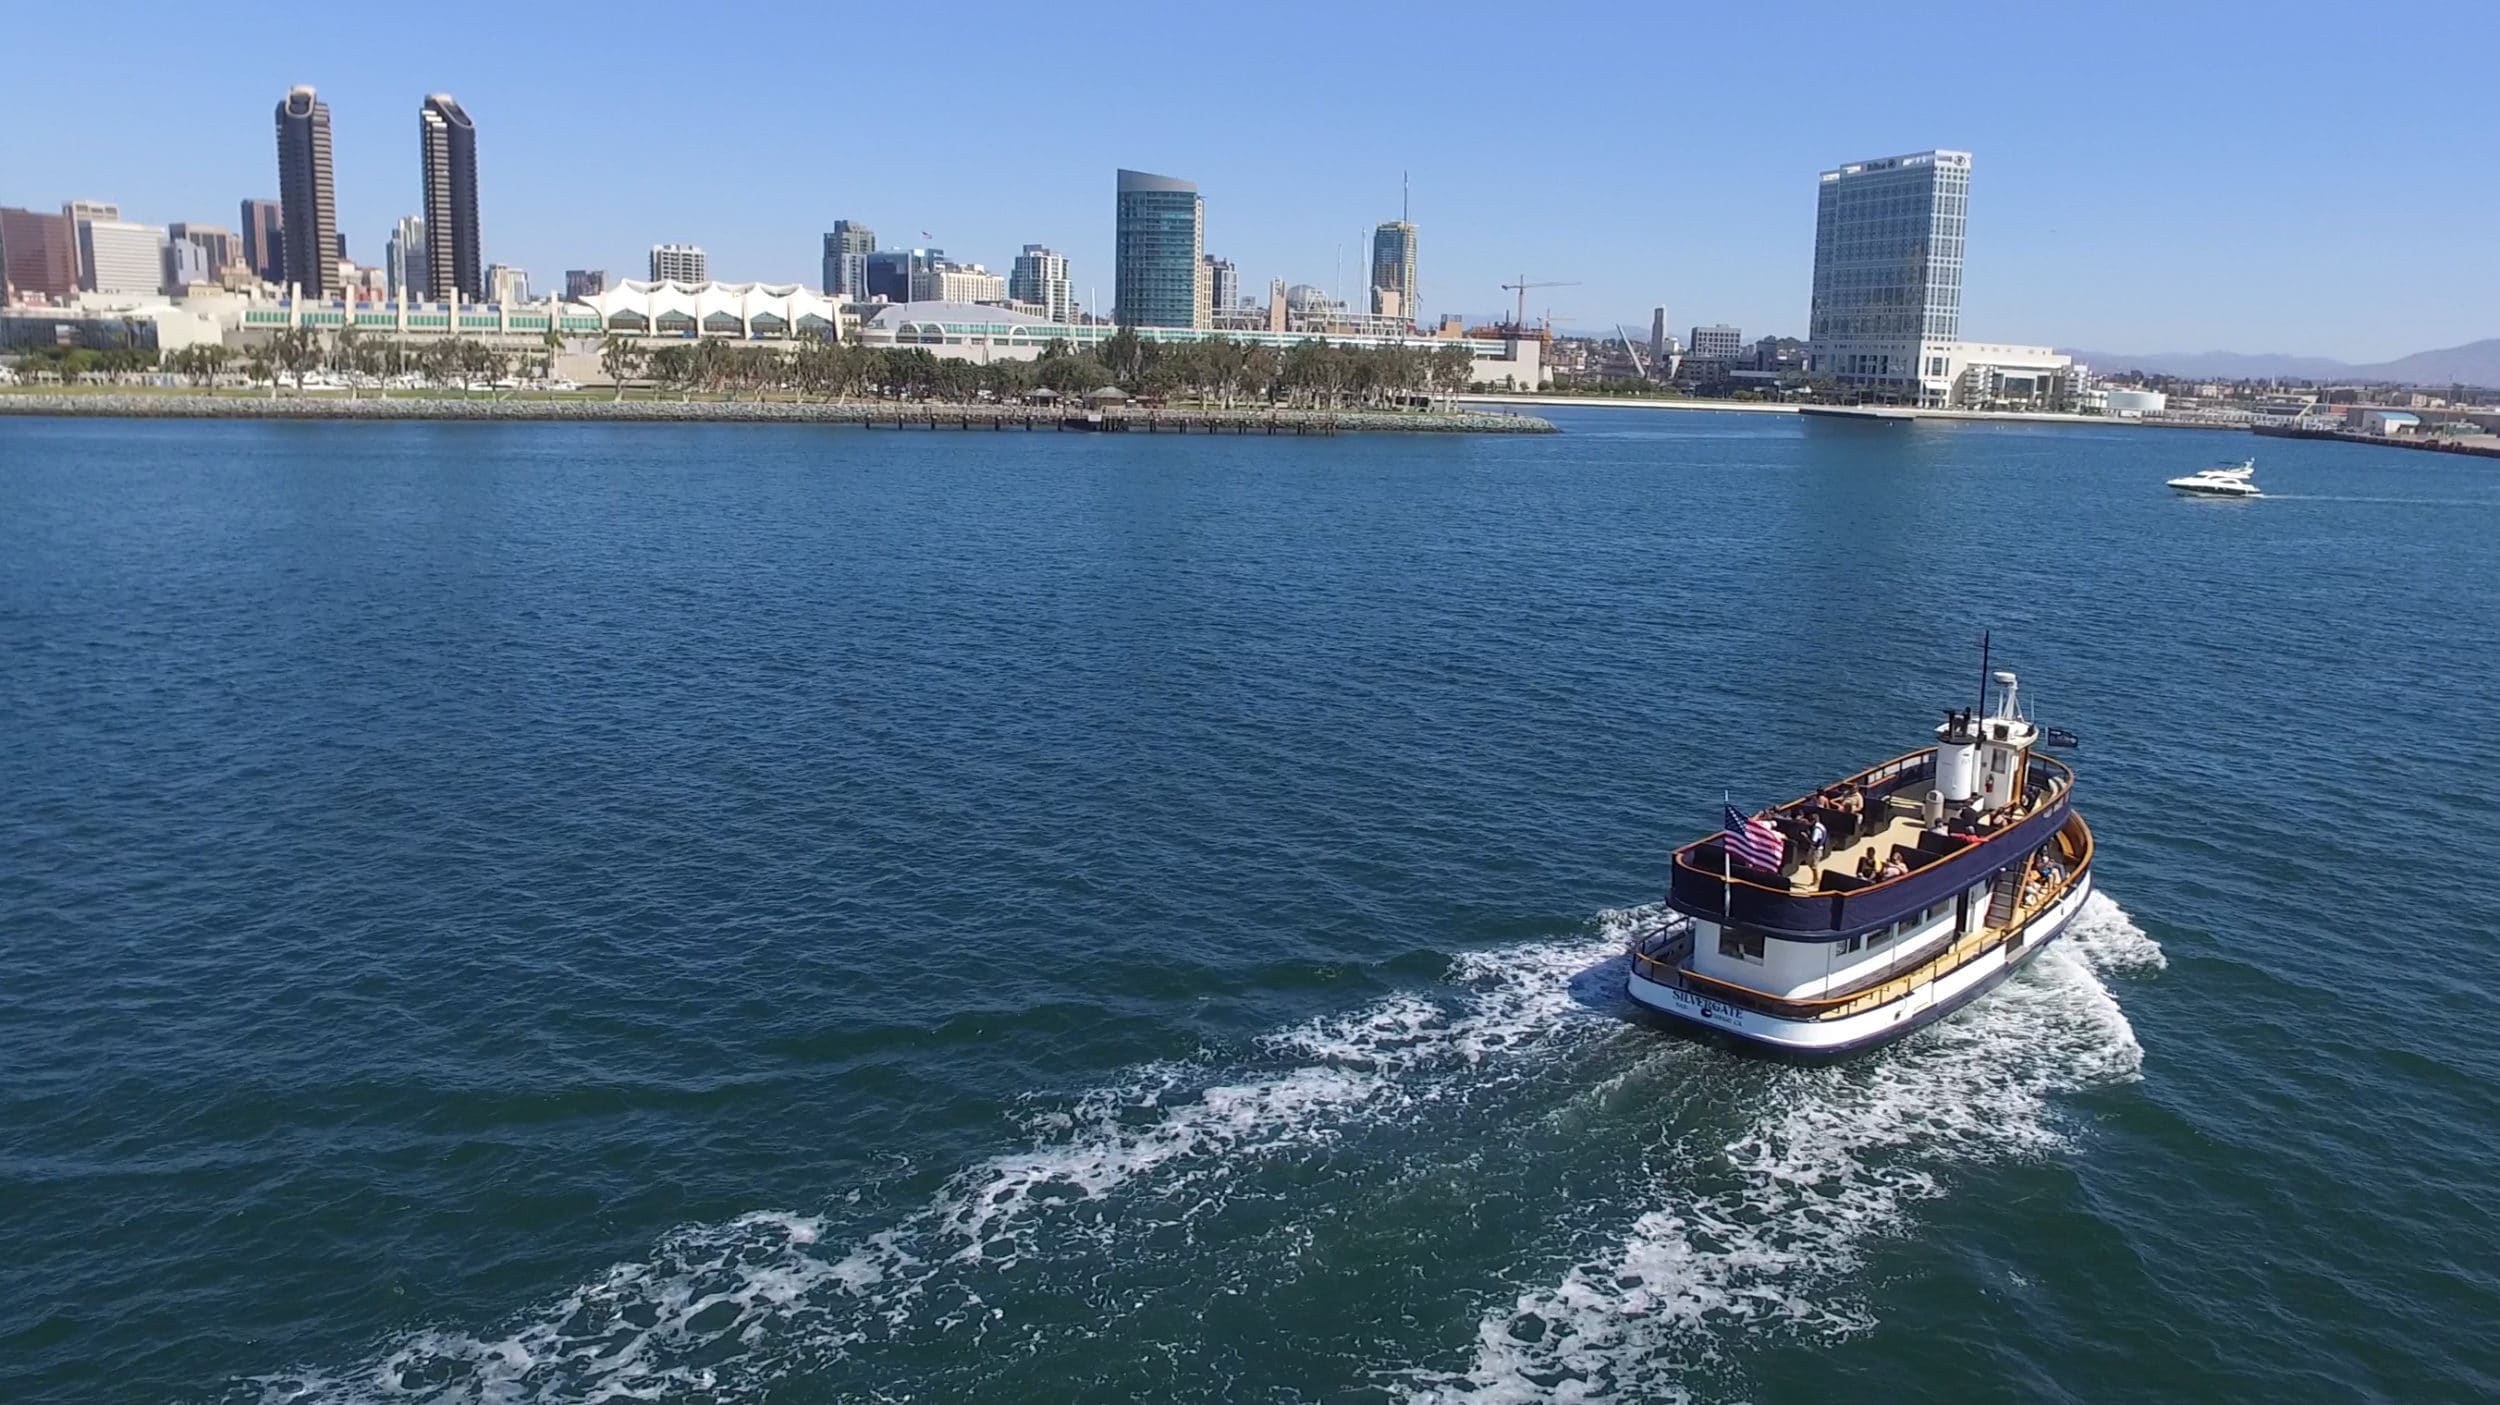 Take the Coronado Ferry from downtown to Coronado